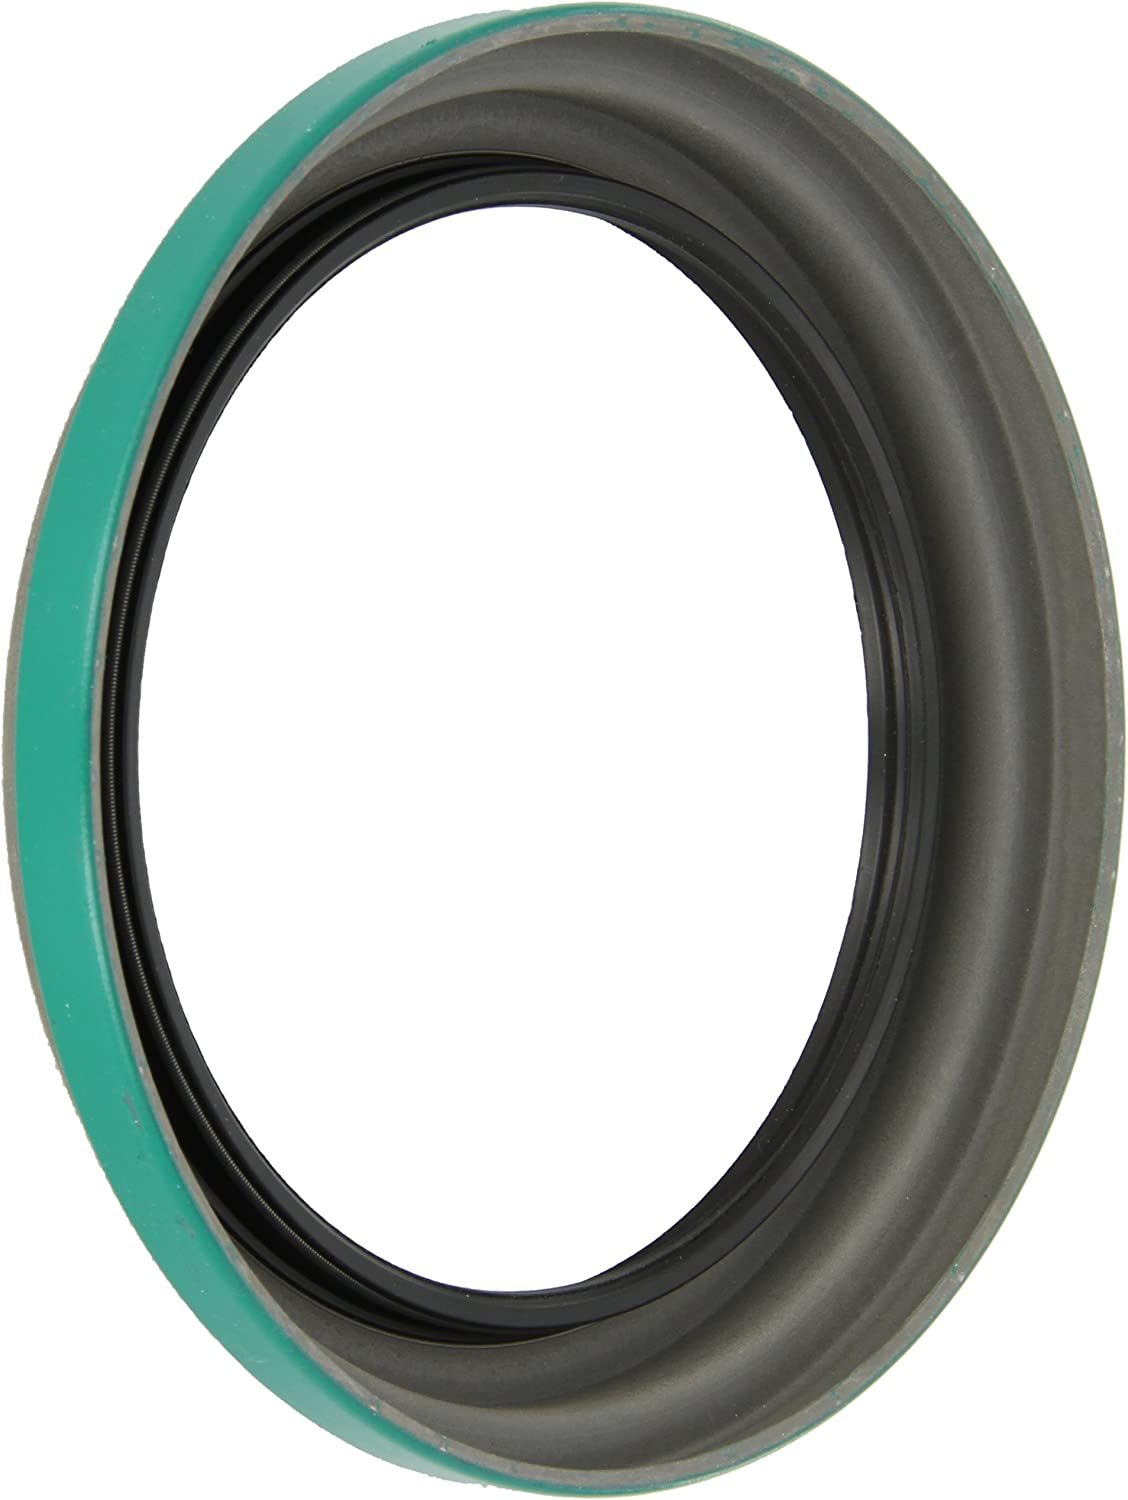 SKF 50167 LDS Small Bore Seal Code CRWA79 R Style Lip Inch Long-awaited Manufacturer regenerated product